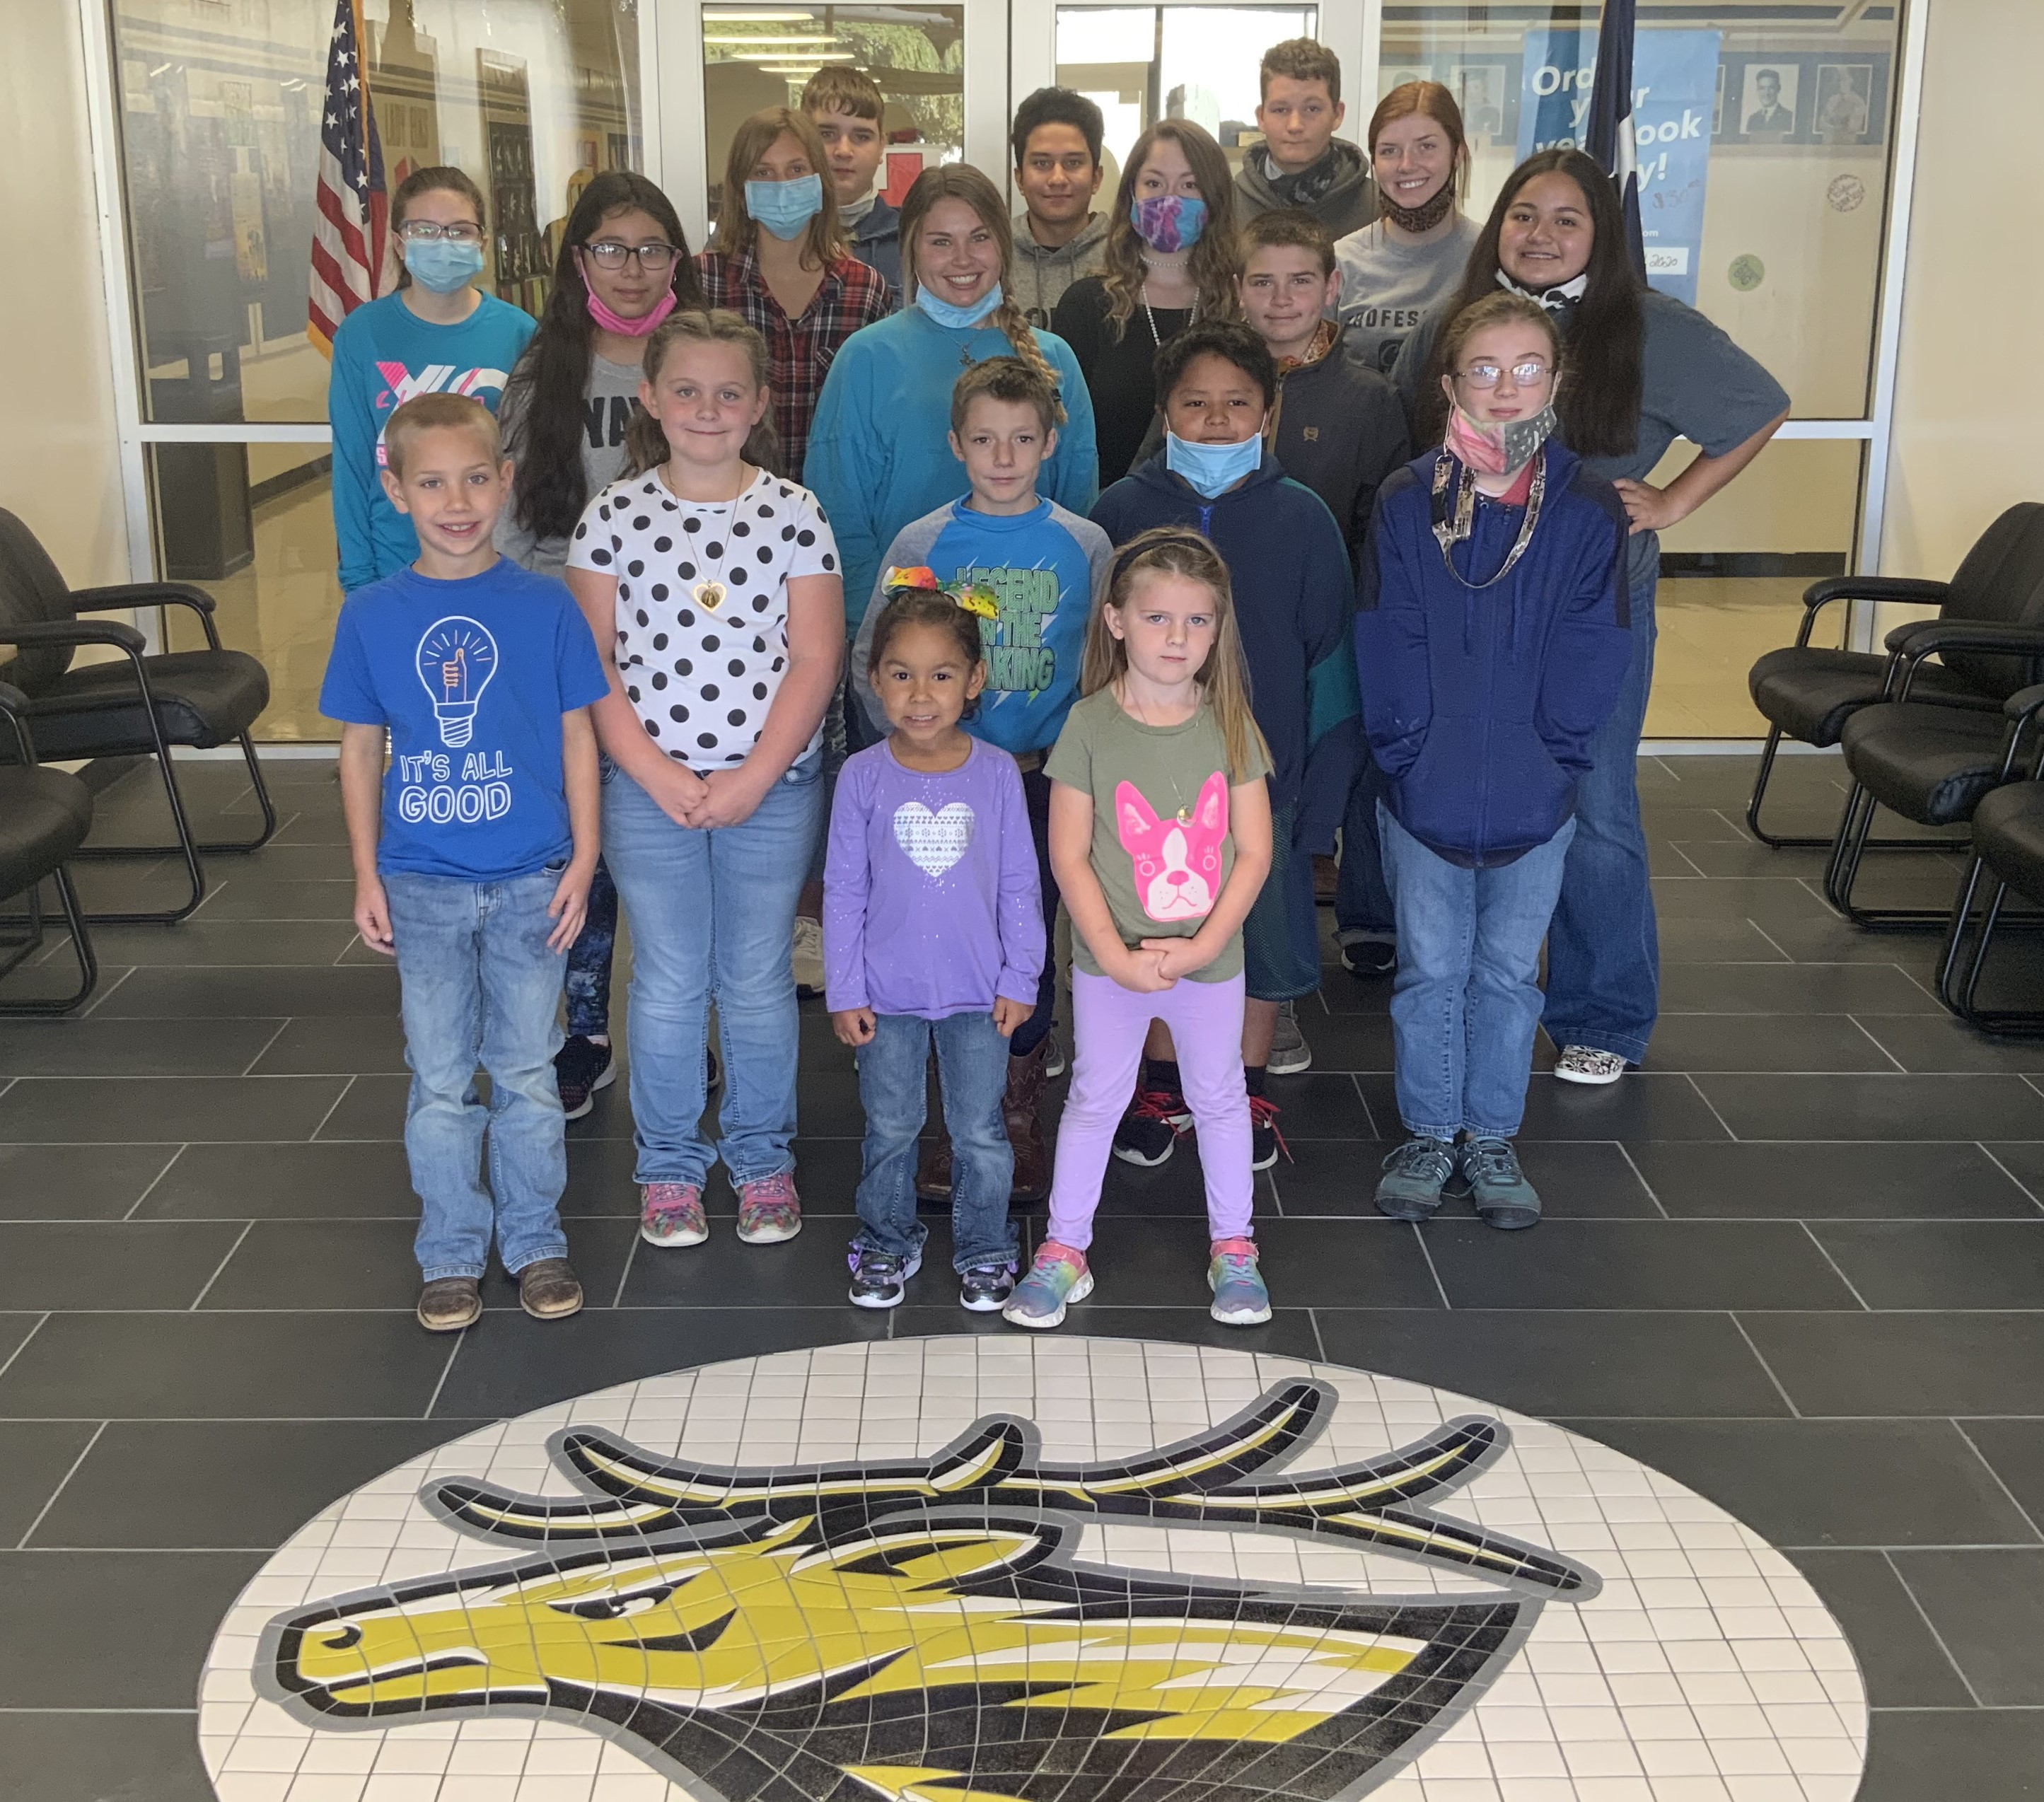 The Evant ISD Heritage Foundation funded the renovation of our school lobby. This photo shows student representatives as well as the new furnishings and tile floor with a mosaic of mascot.